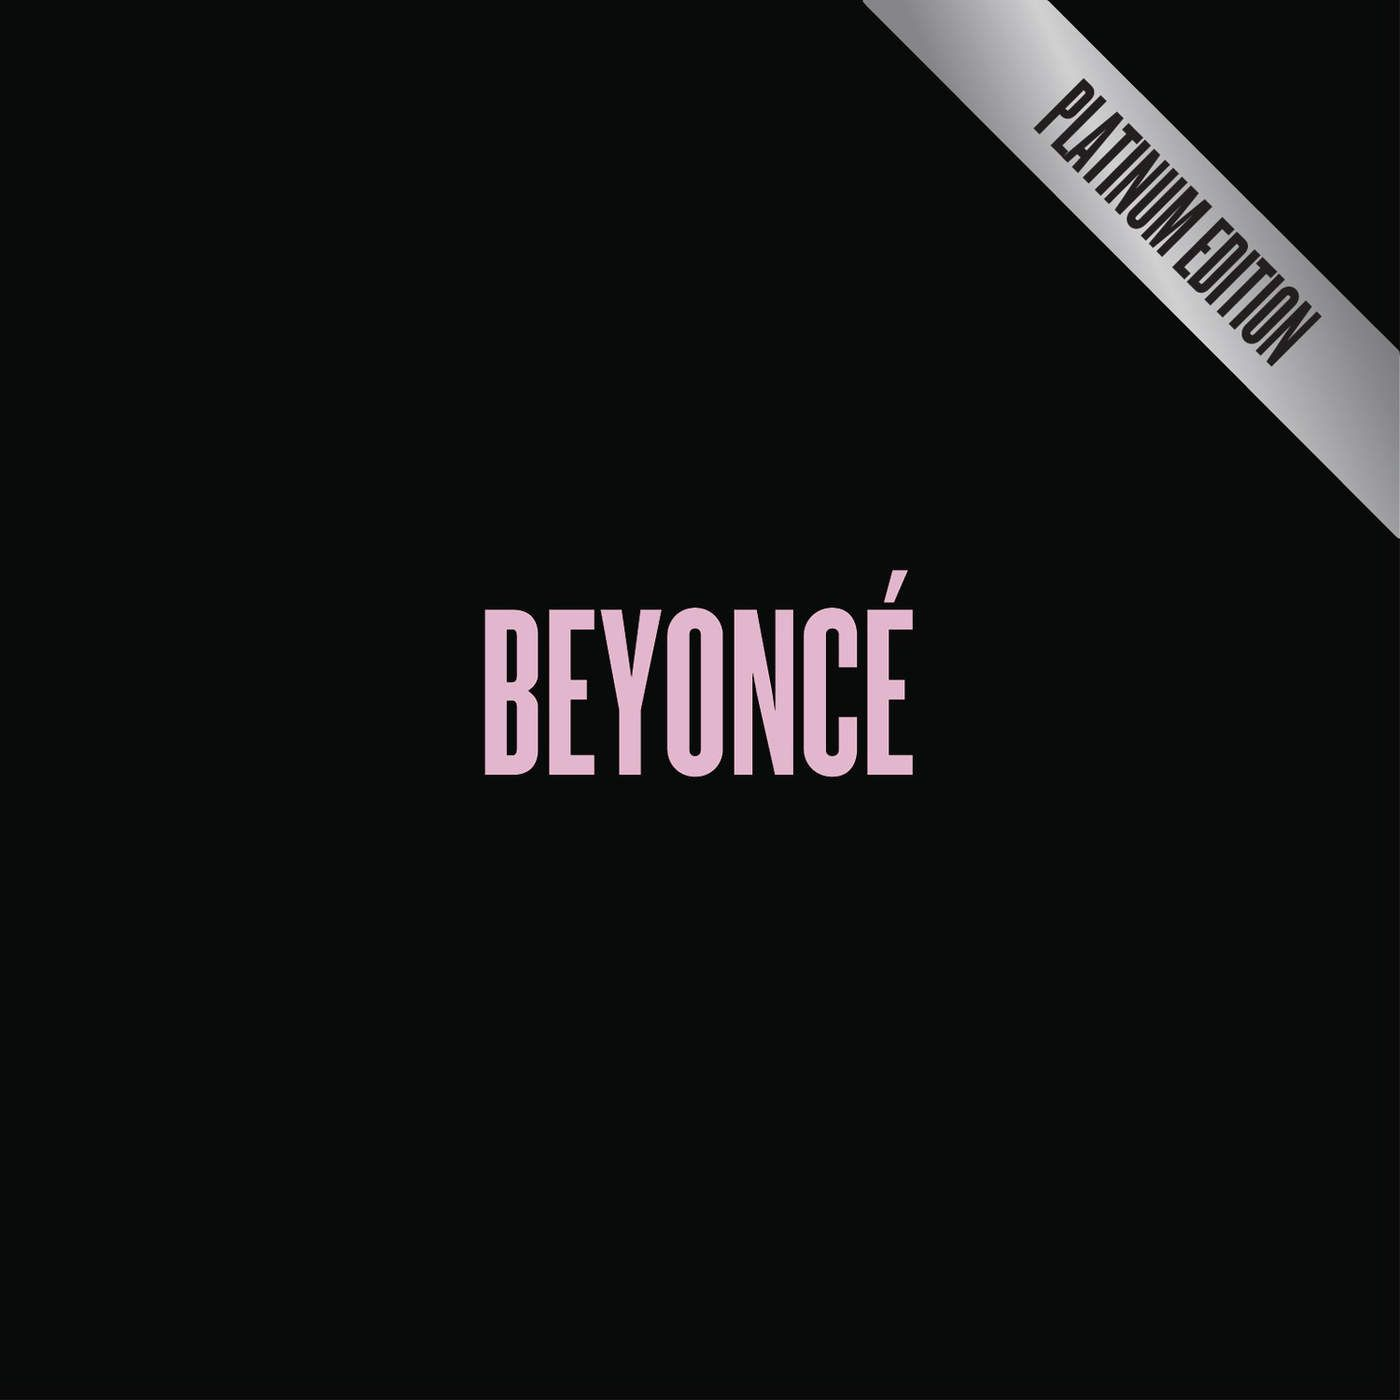 Beyoncé - Beyonce - Platinum Edition More album cover